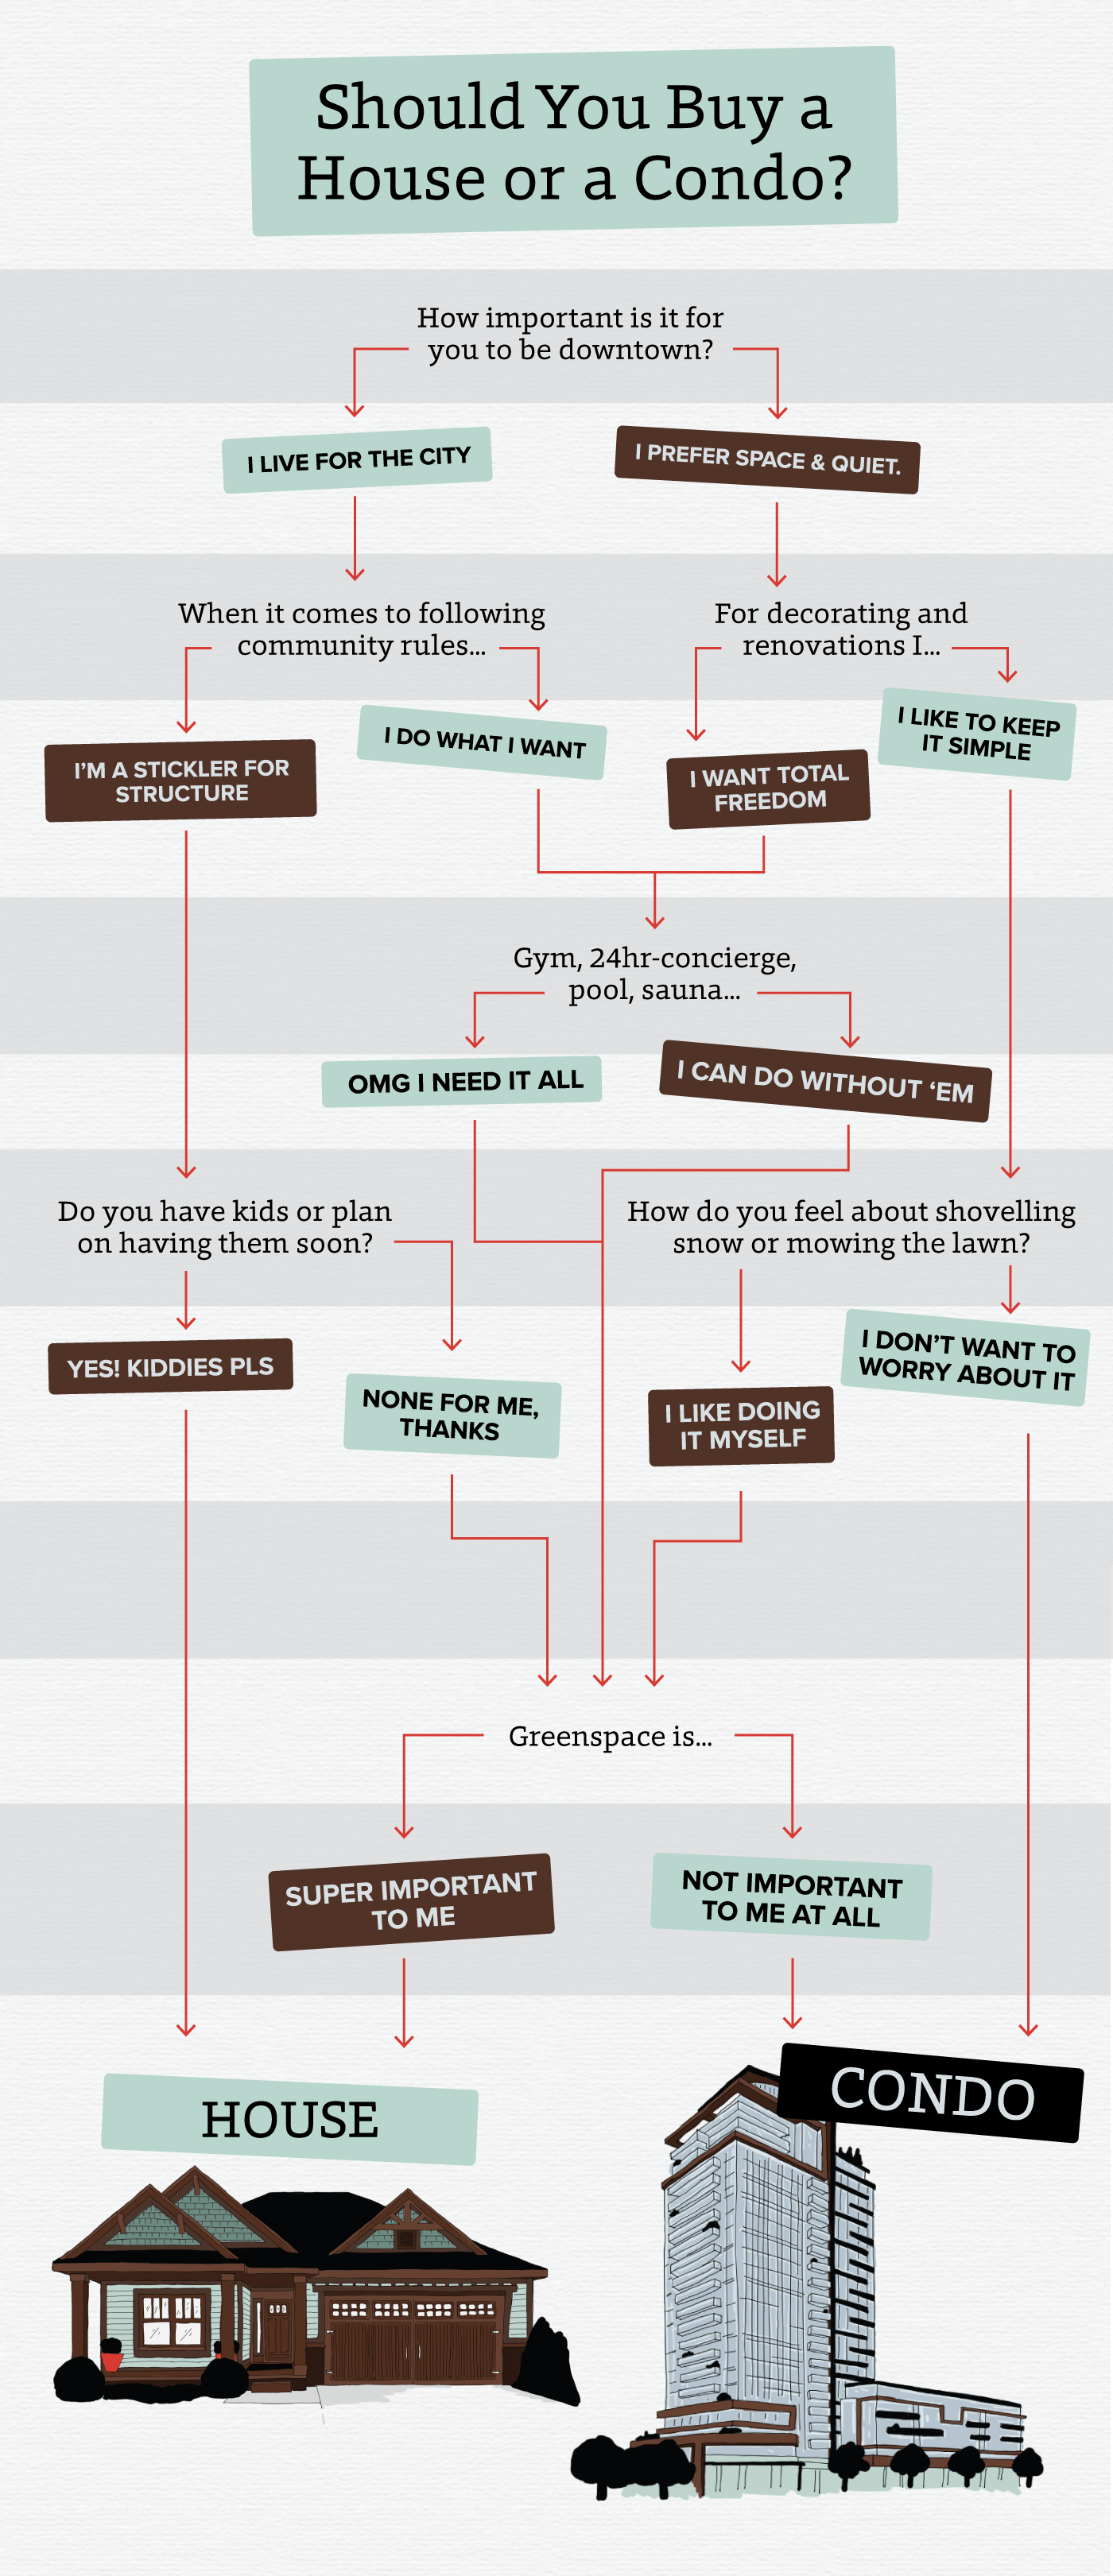 a decision-tree graphic on wheether you should buy a house or a condo